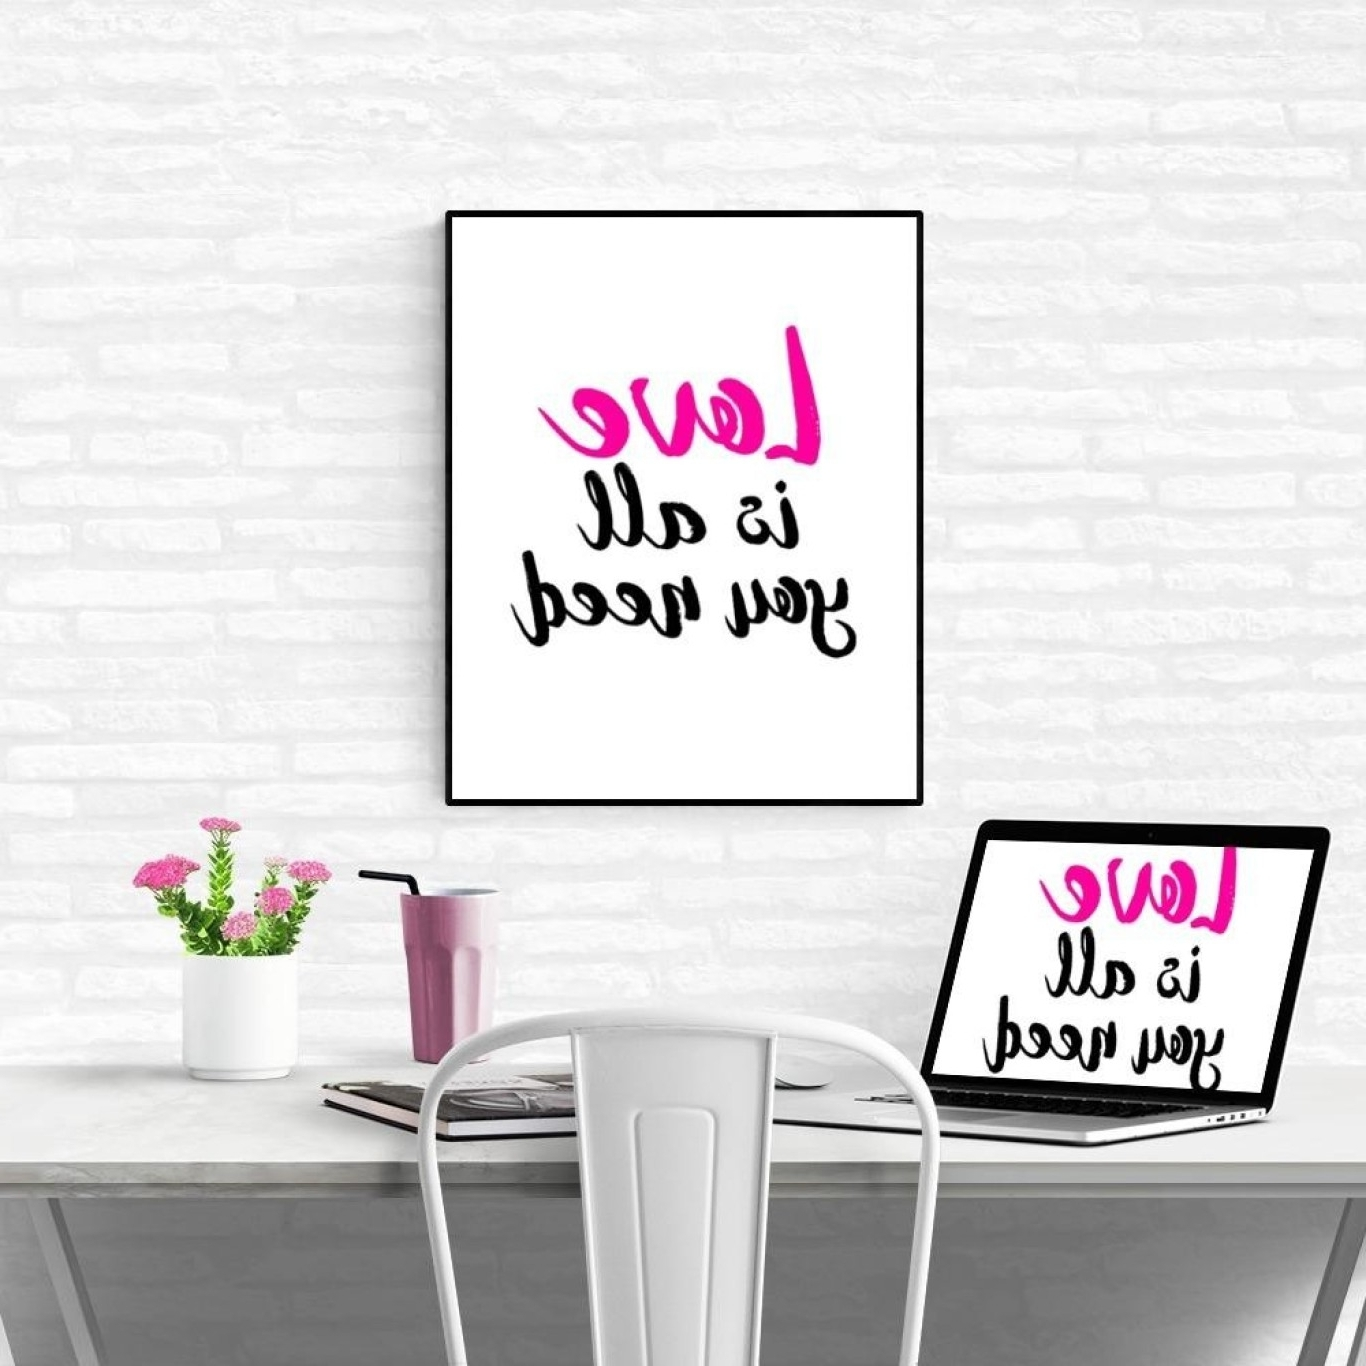 Inspirational Wall Art For Girls Within Favorite Inspirational Wall Art (Gallery 12 of 15)